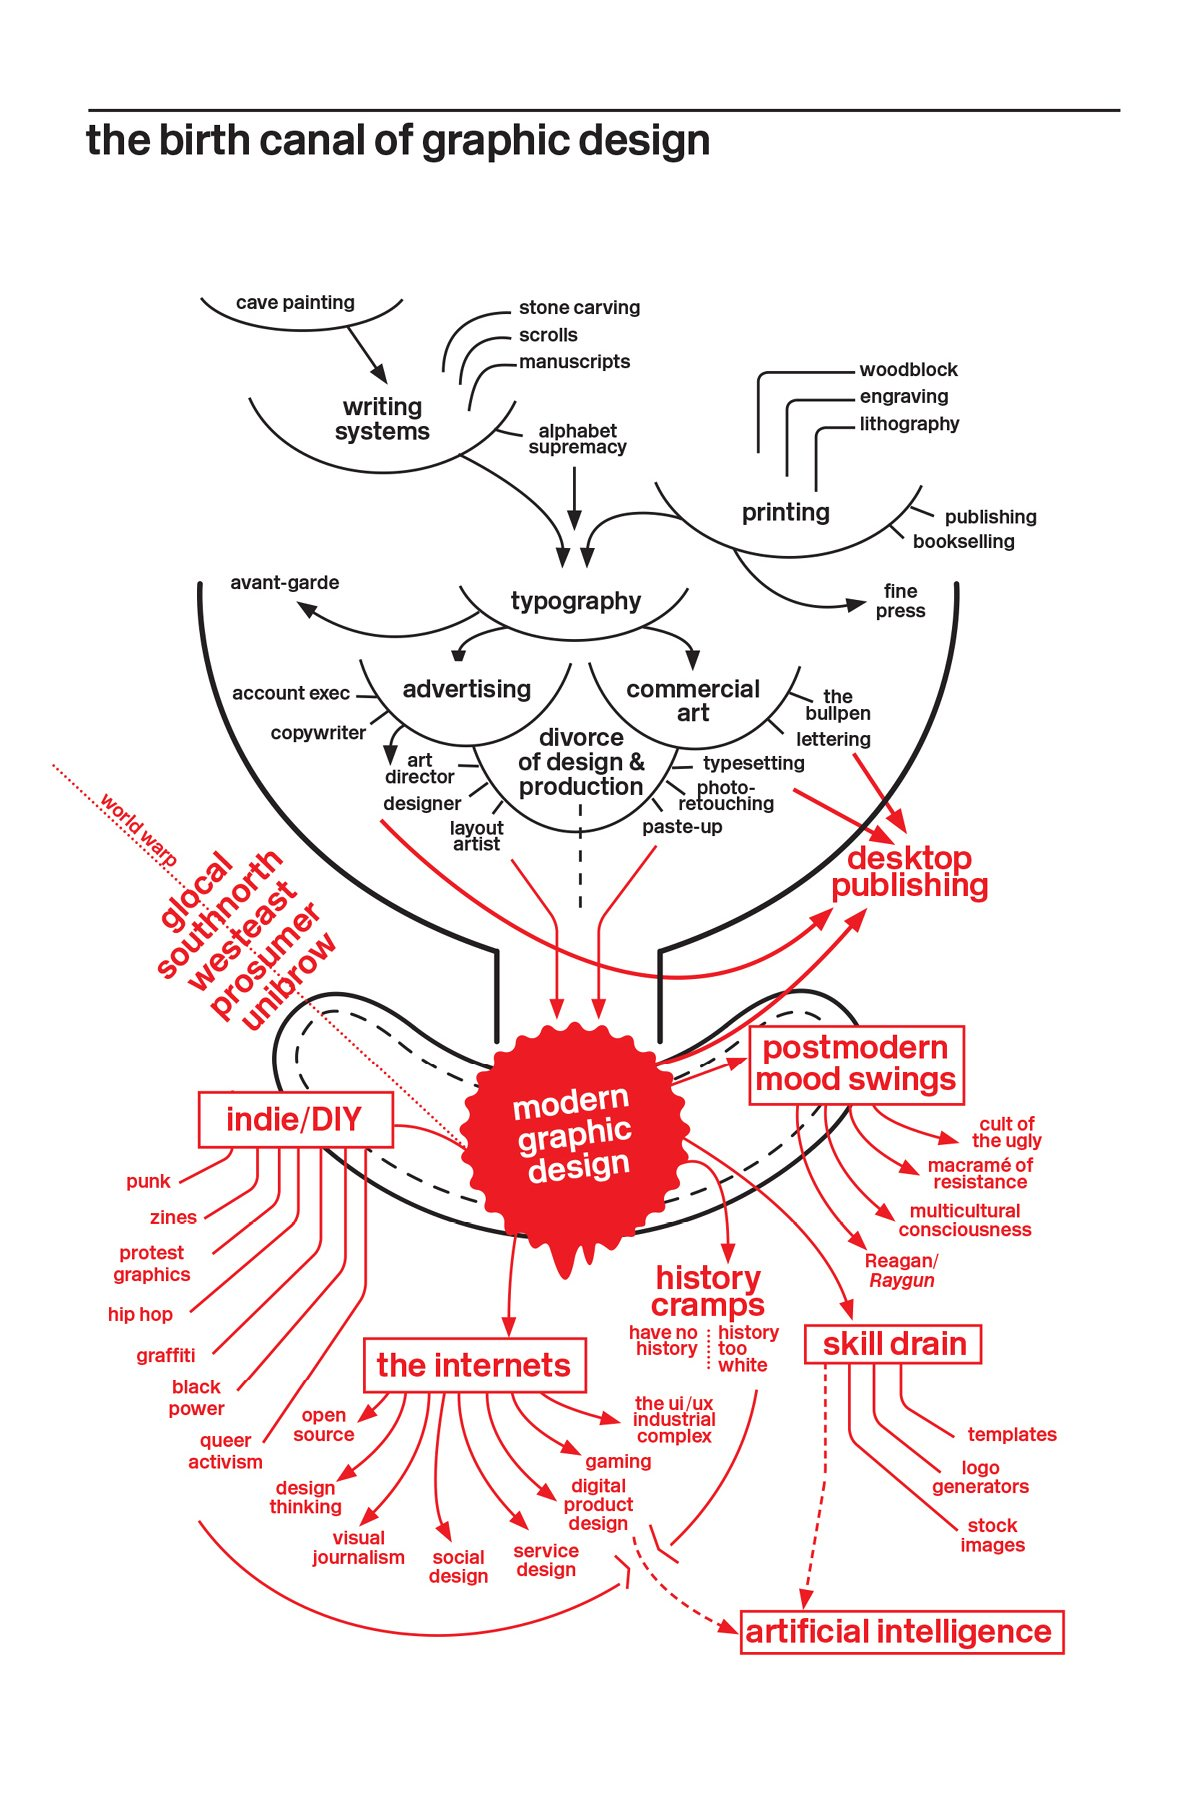 poster of the birth canal of graphic design showing the interconnections of writing systems, typography, modern design, and more